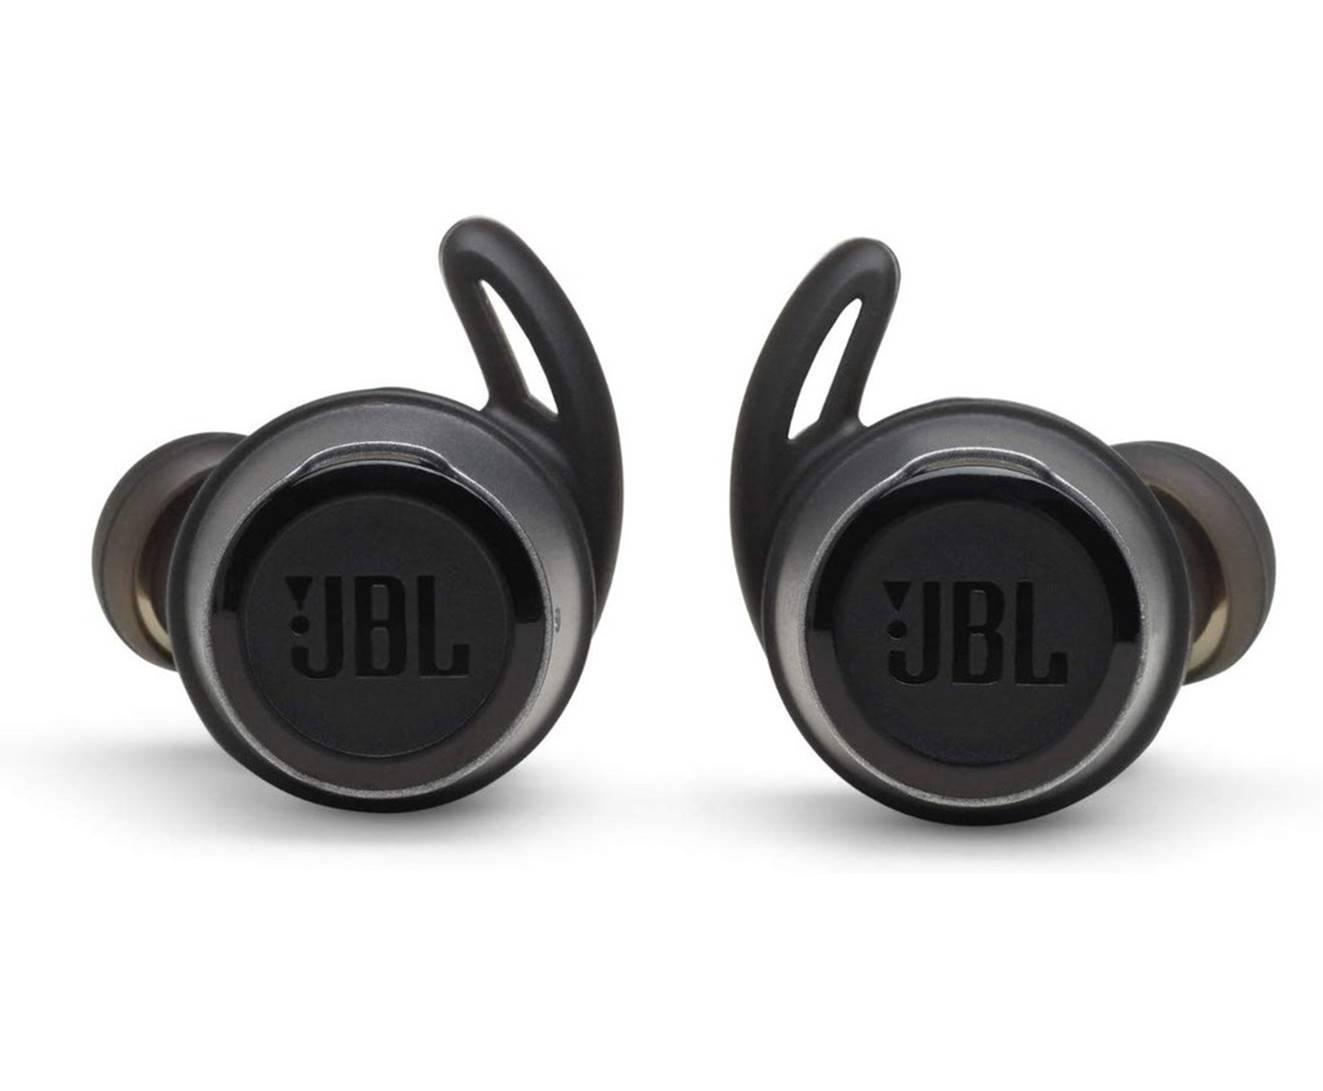 JBL Reflect Flow Loudest Wireless Earbuds